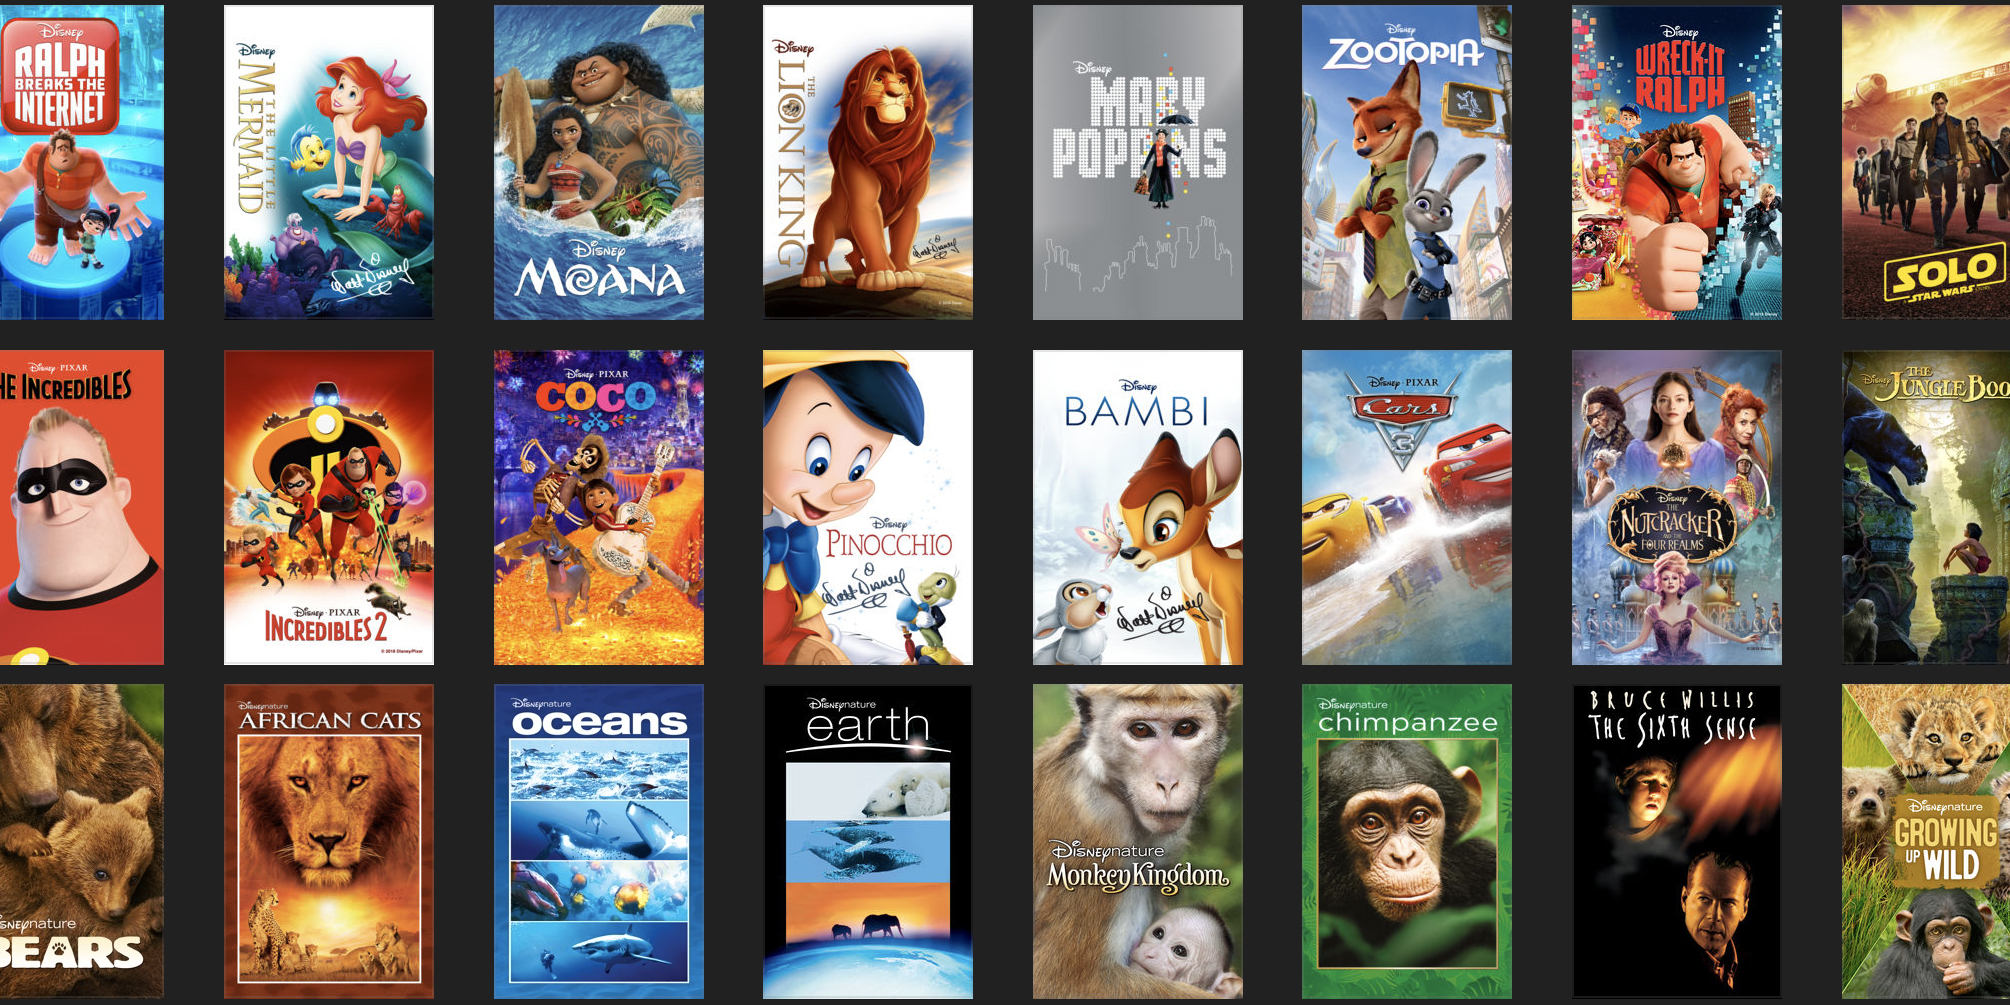 This week's best iTunes movie deals: $15 Disney film sale, action titles from $5, $1 rental, more